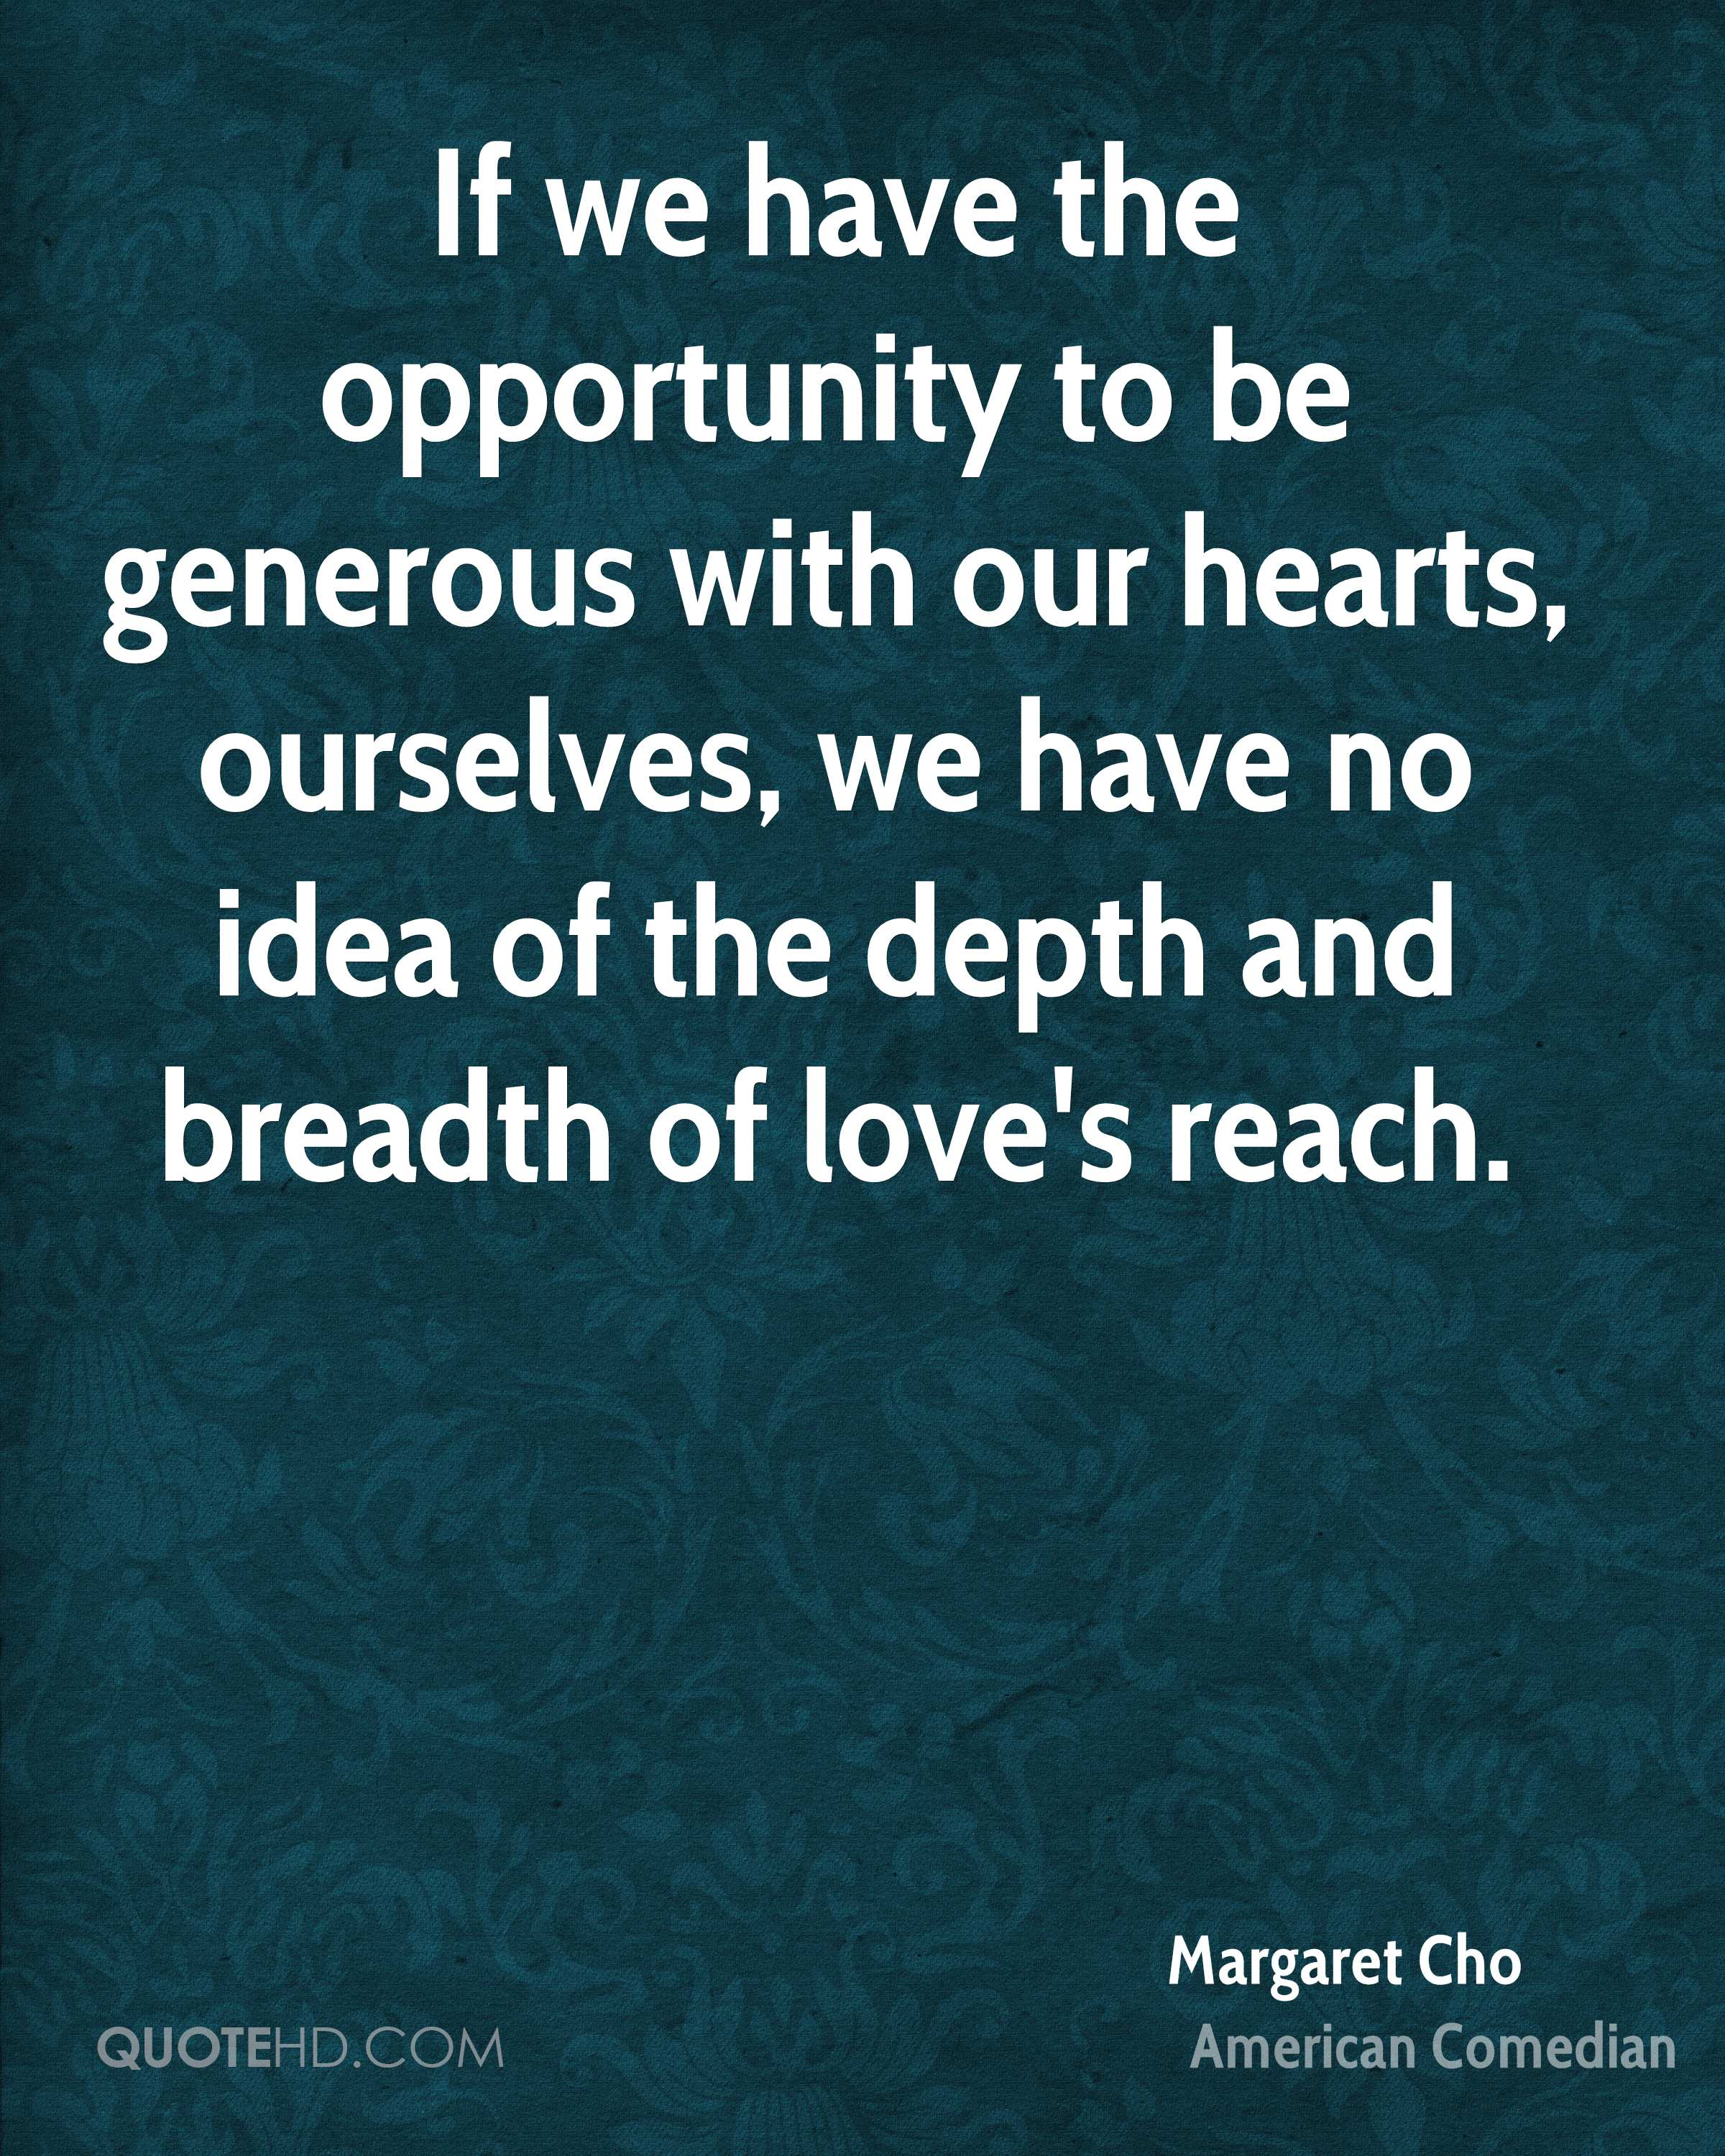 If we have the opportunity to be generous with our hearts, ourselves, we have no idea of the depth and breadth of love's reach.